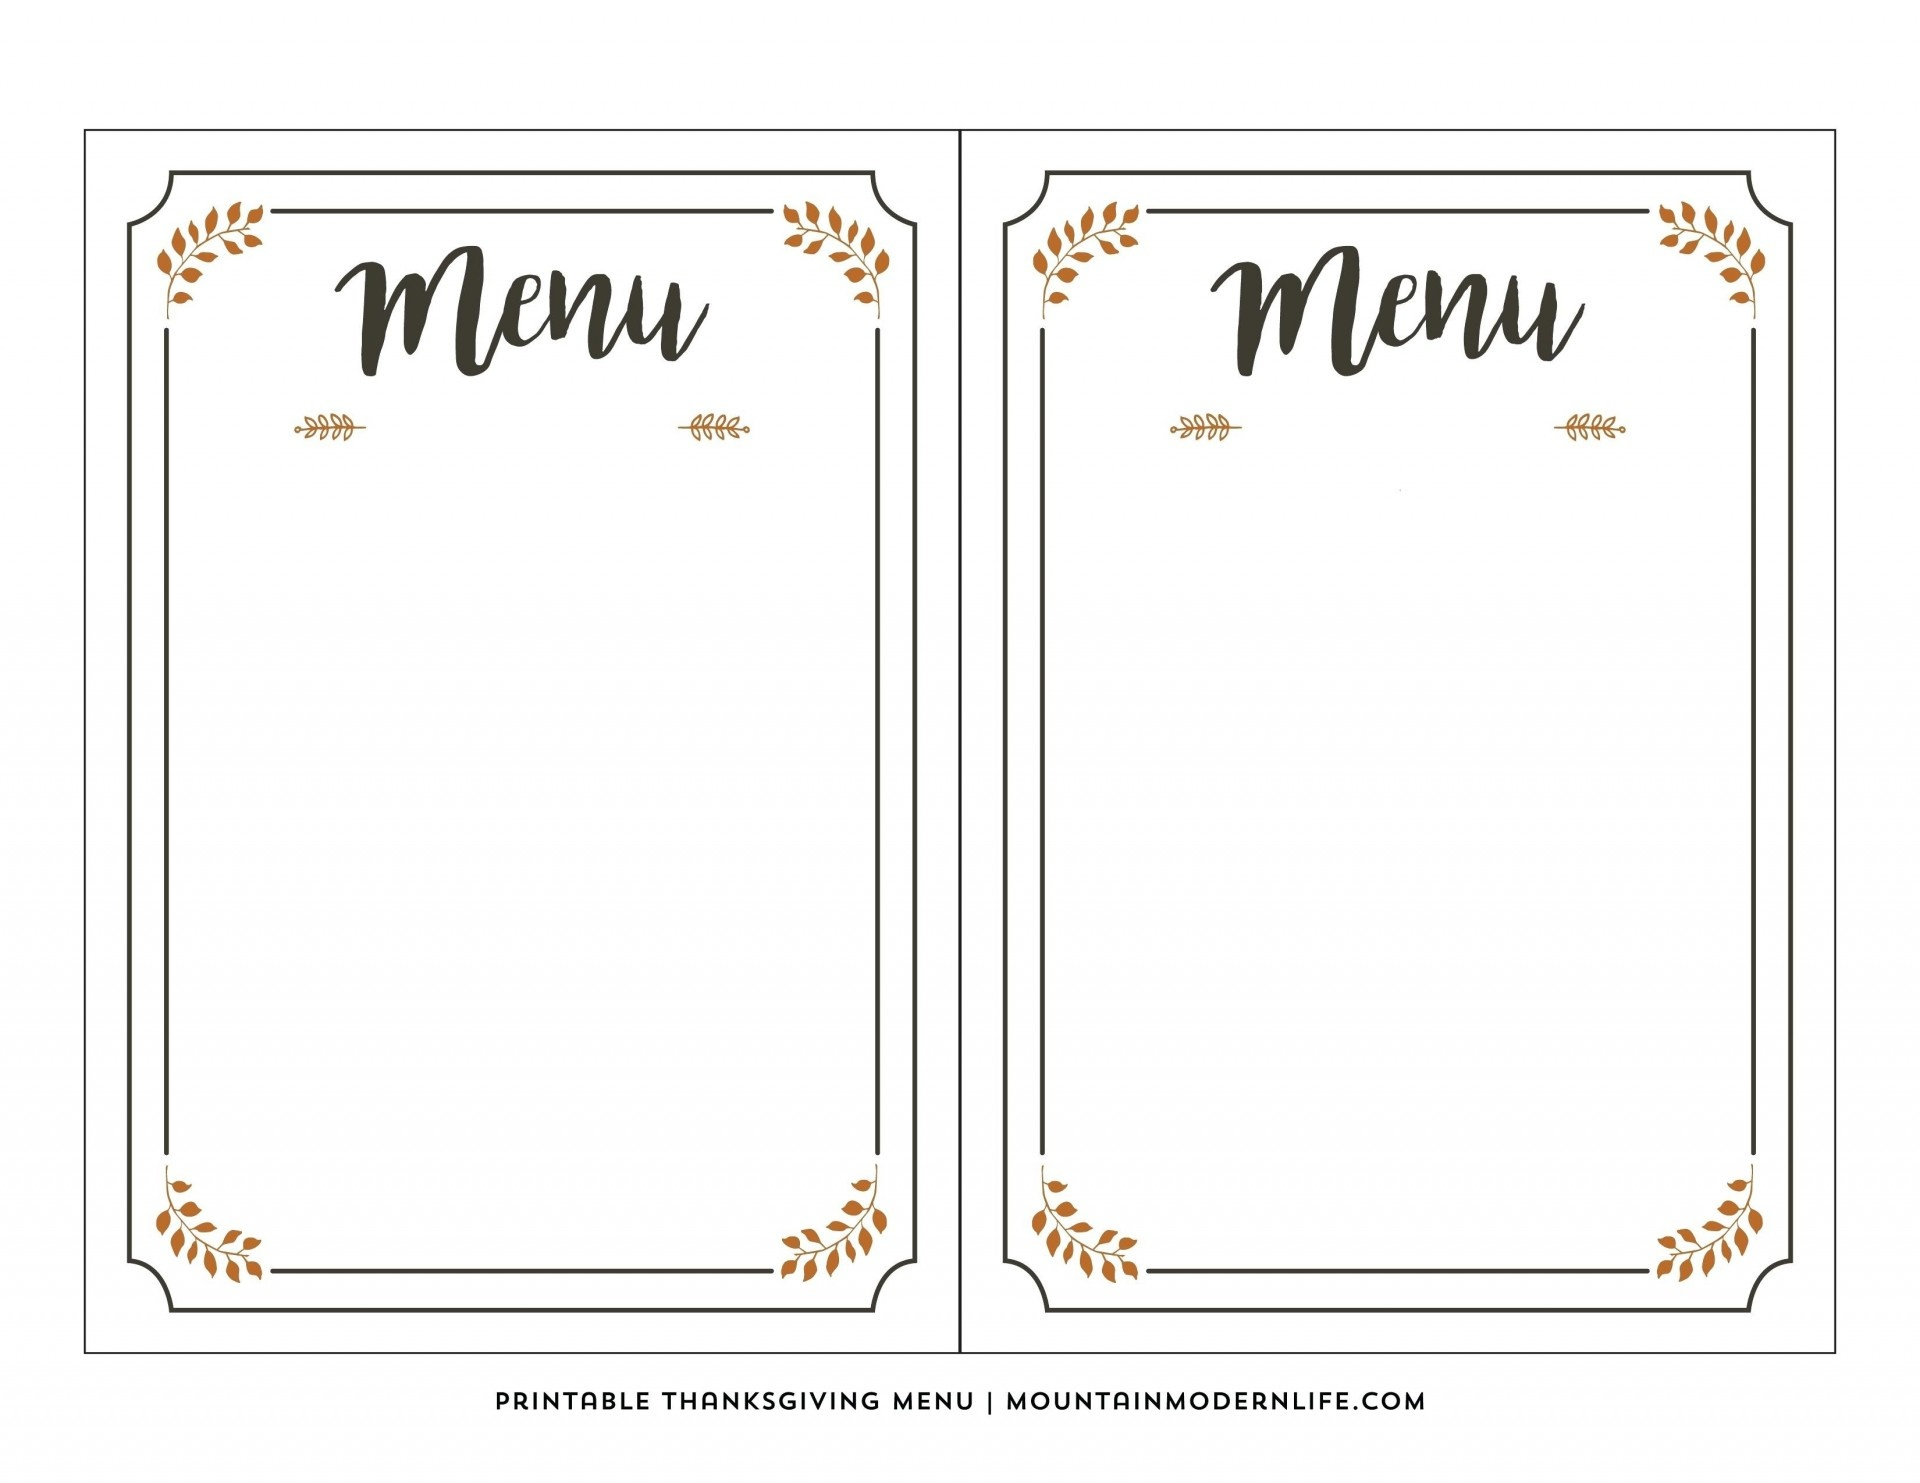 003 Free Printable Menu Template Templates For Kids New Awesome - Free Printable Menu